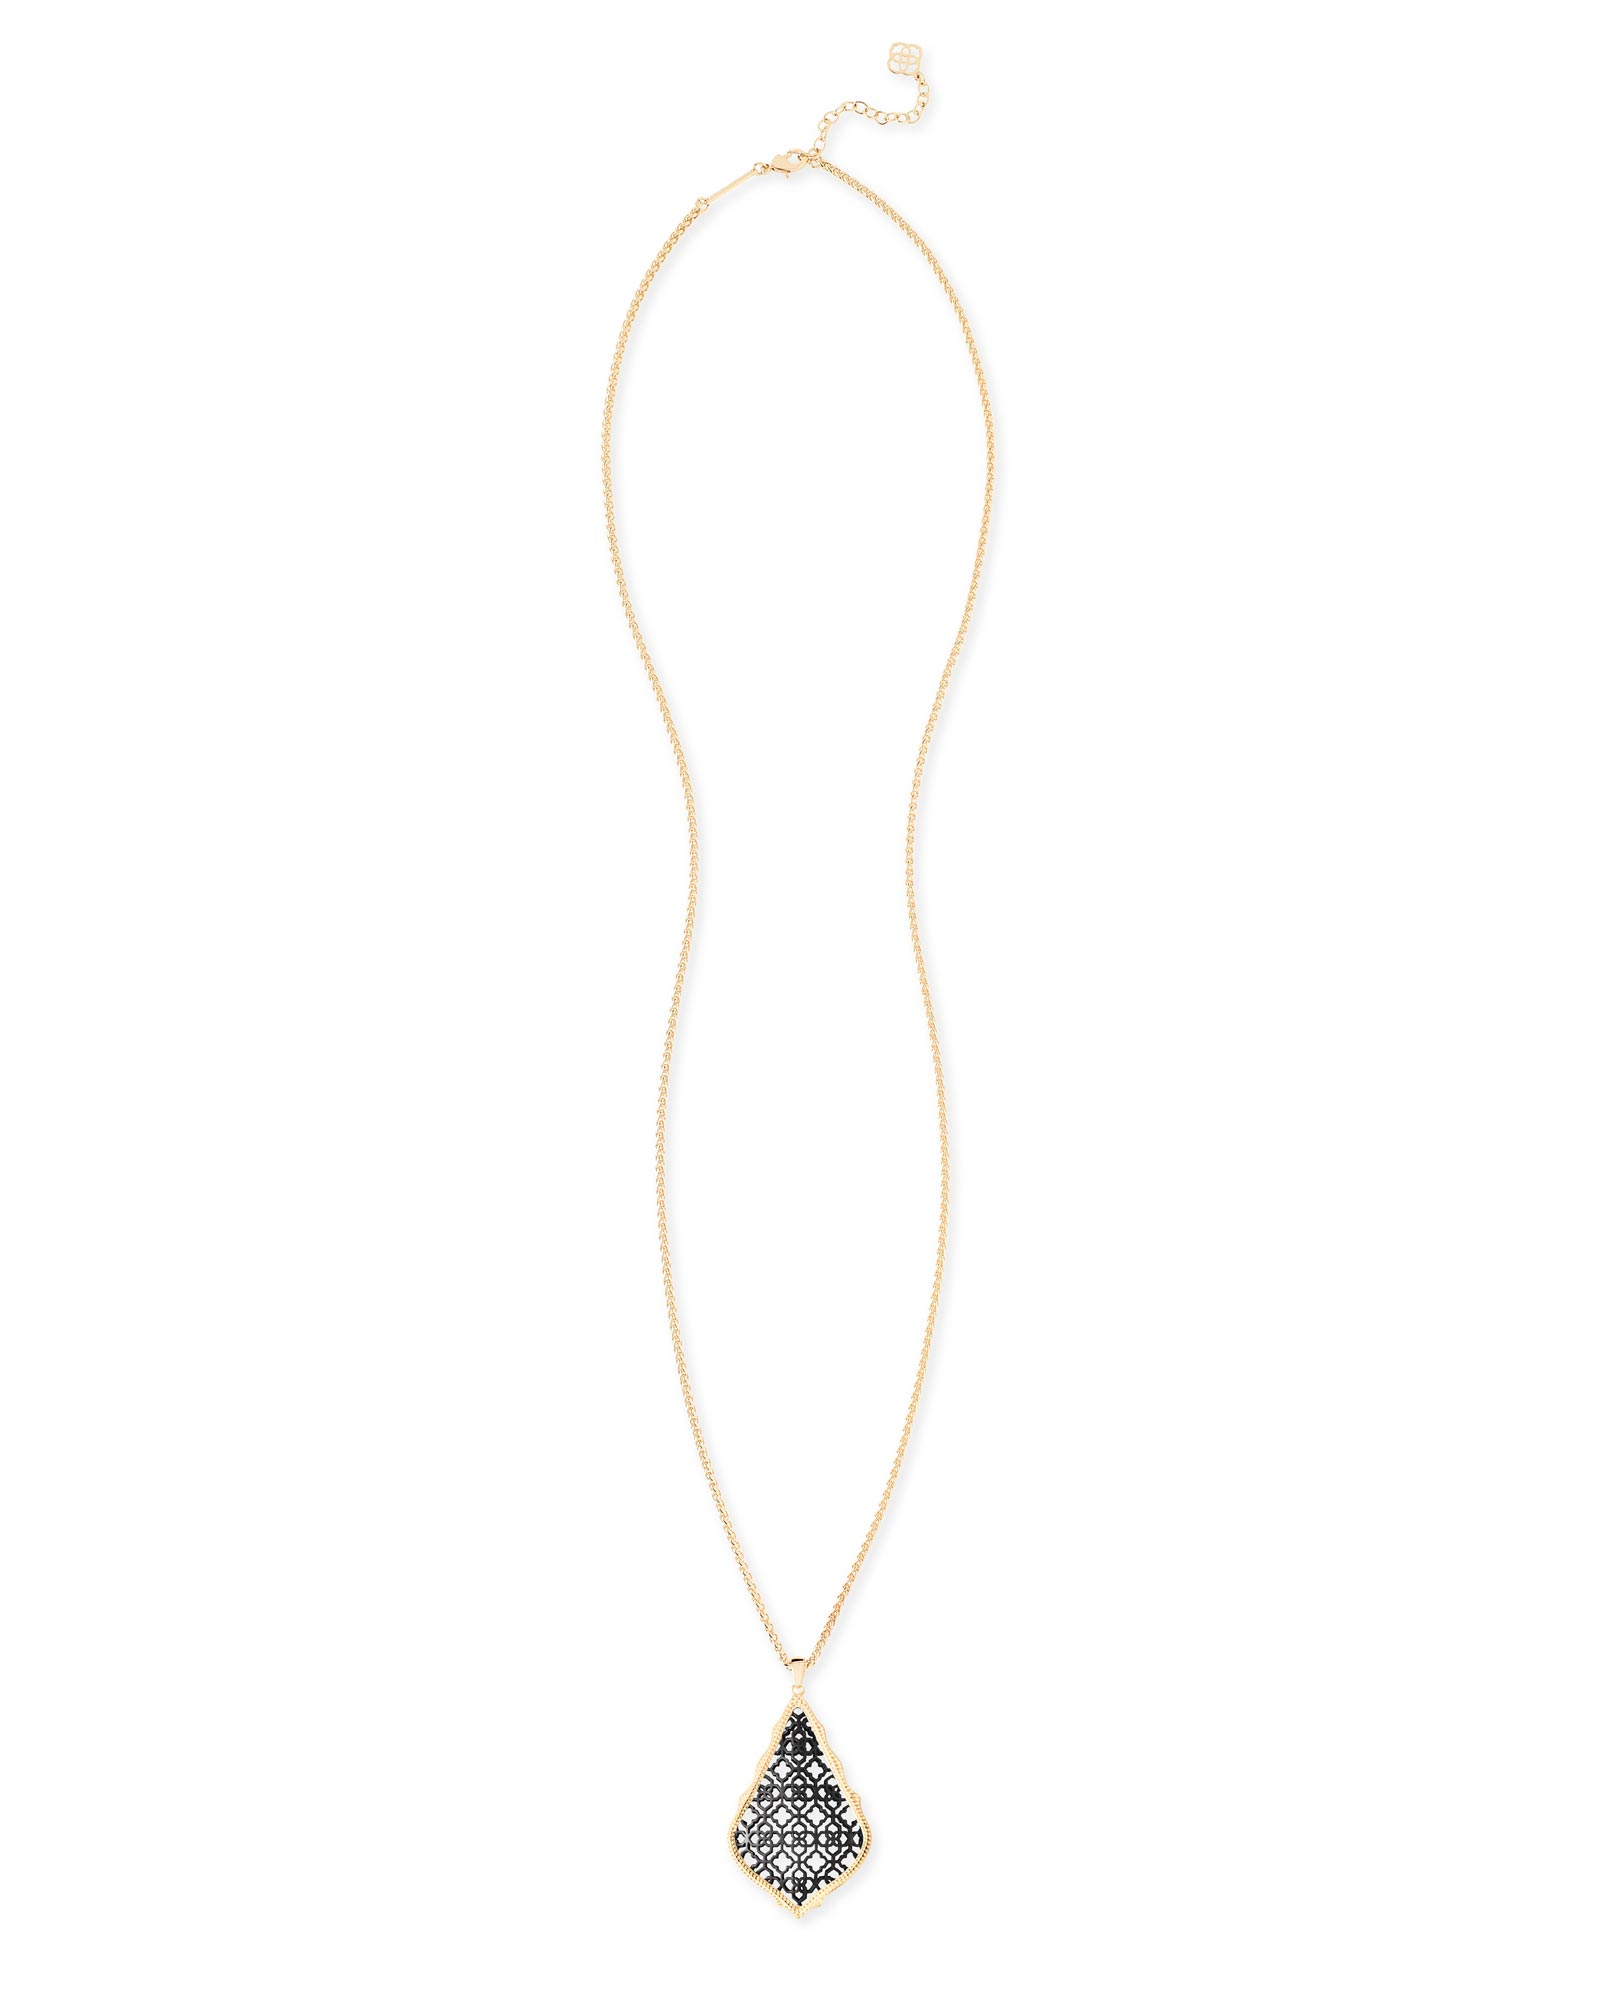 Aiden Gold Long Pendant Necklace in Gunmetal Filigree